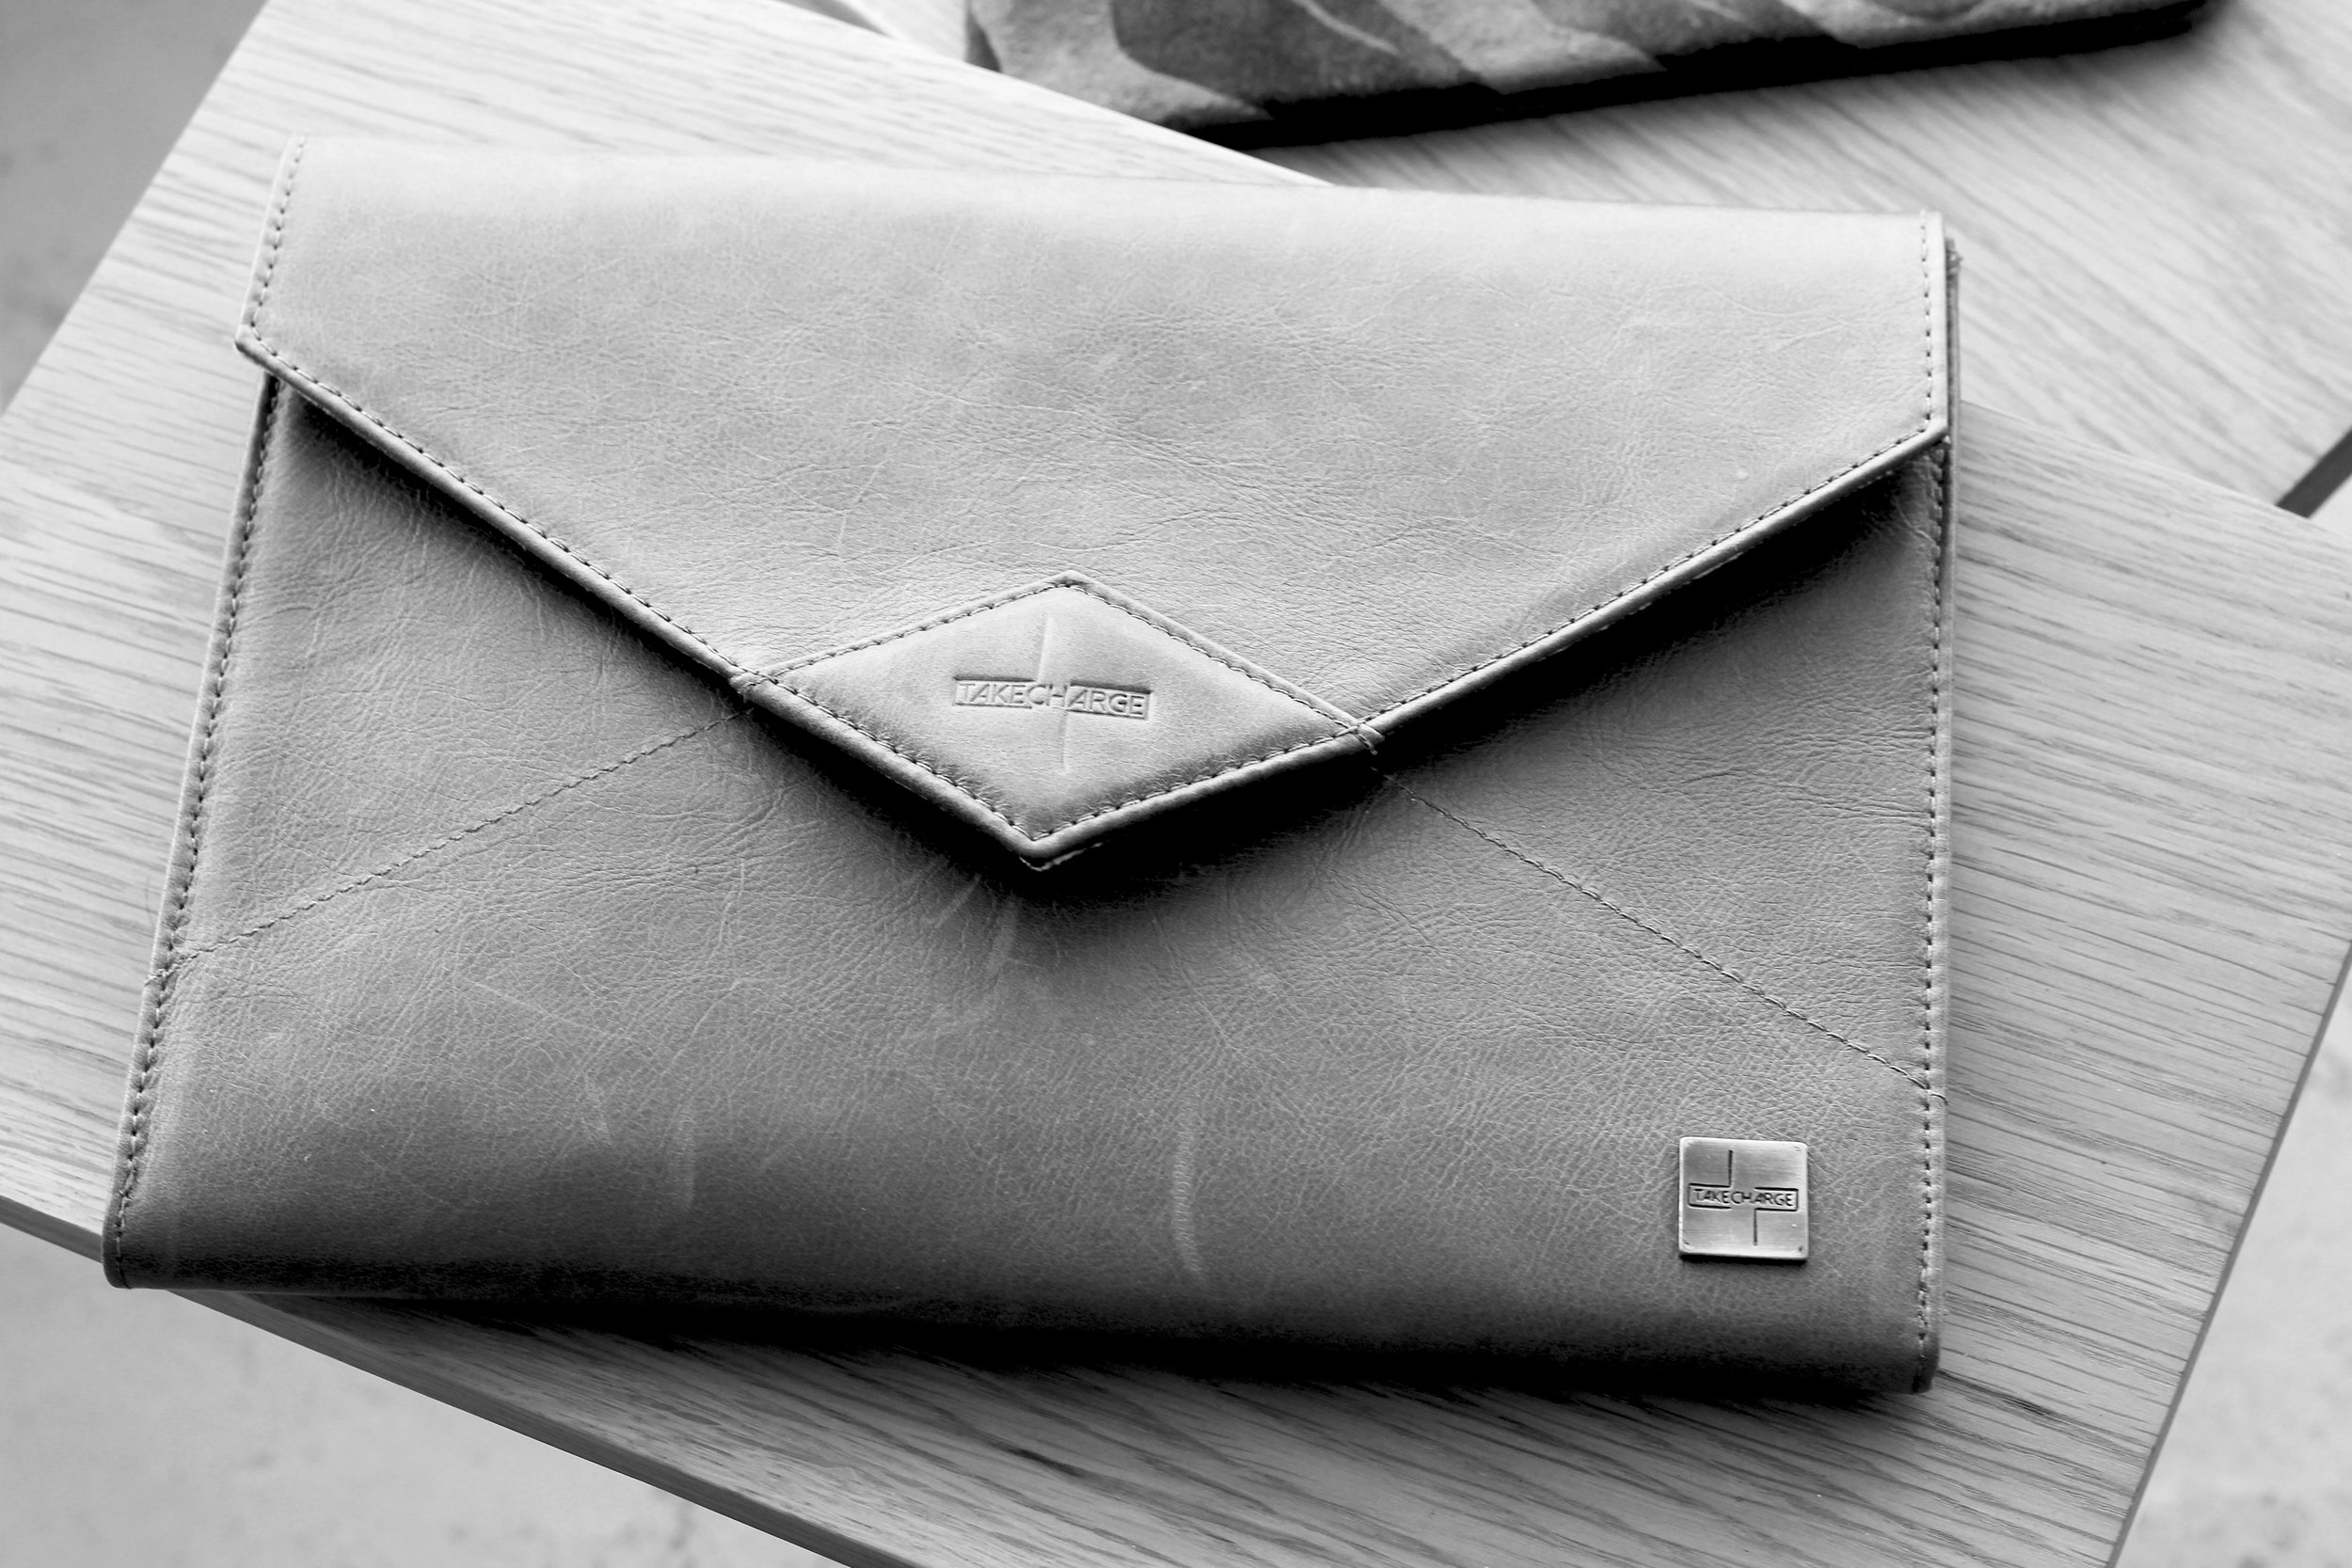 Leather iPad case by Take Charge